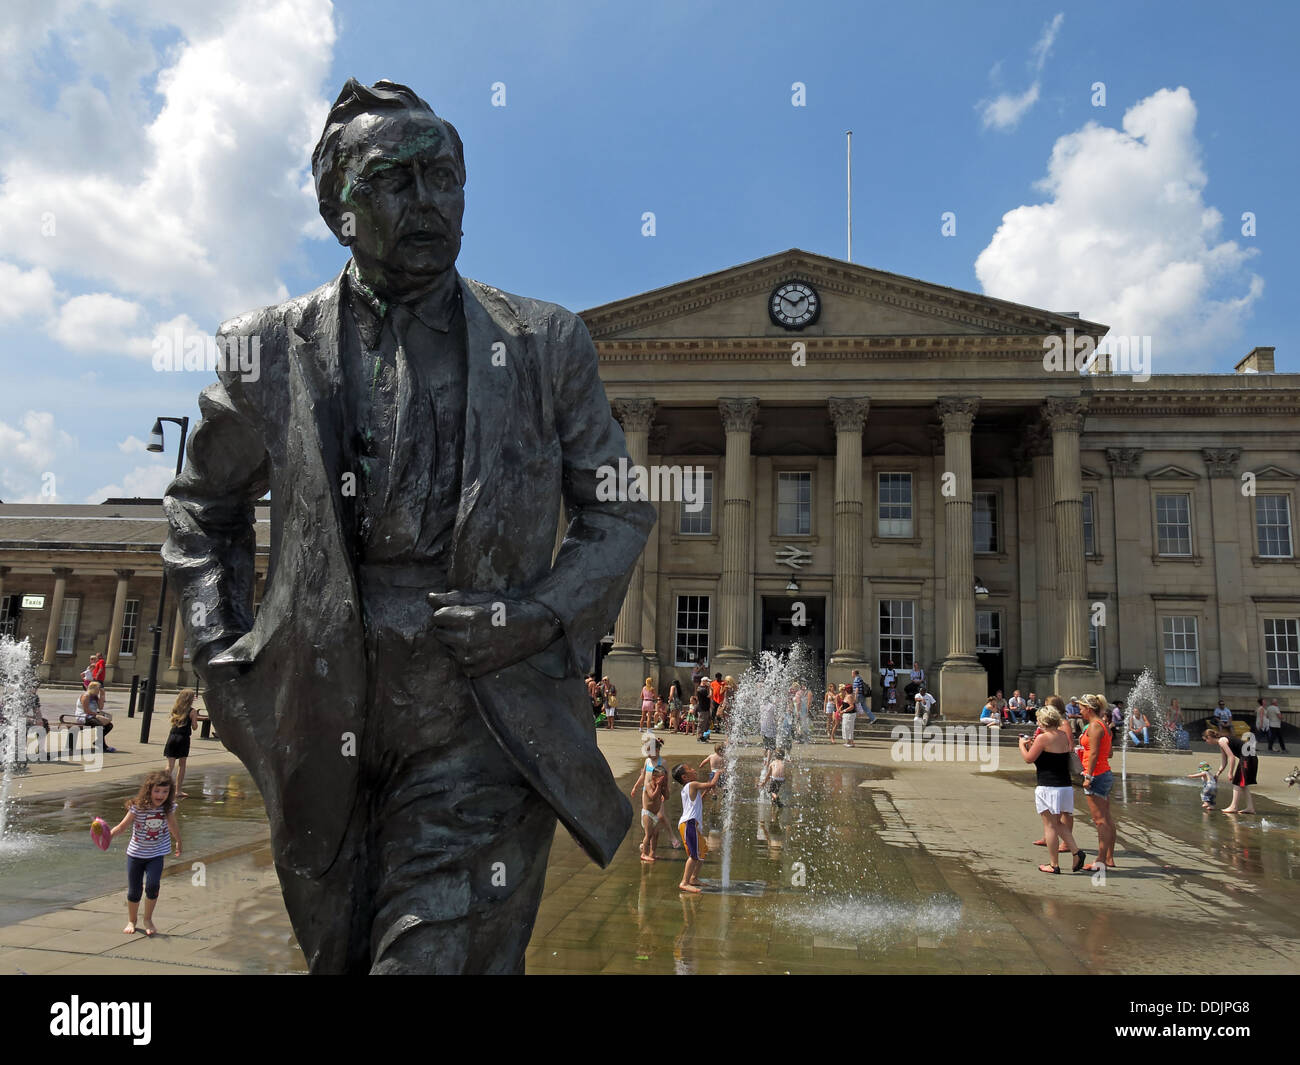 Square outside Huddersfield railway station with fountains and sculpture of Harold Wilson by Ian Walters - Stock Image